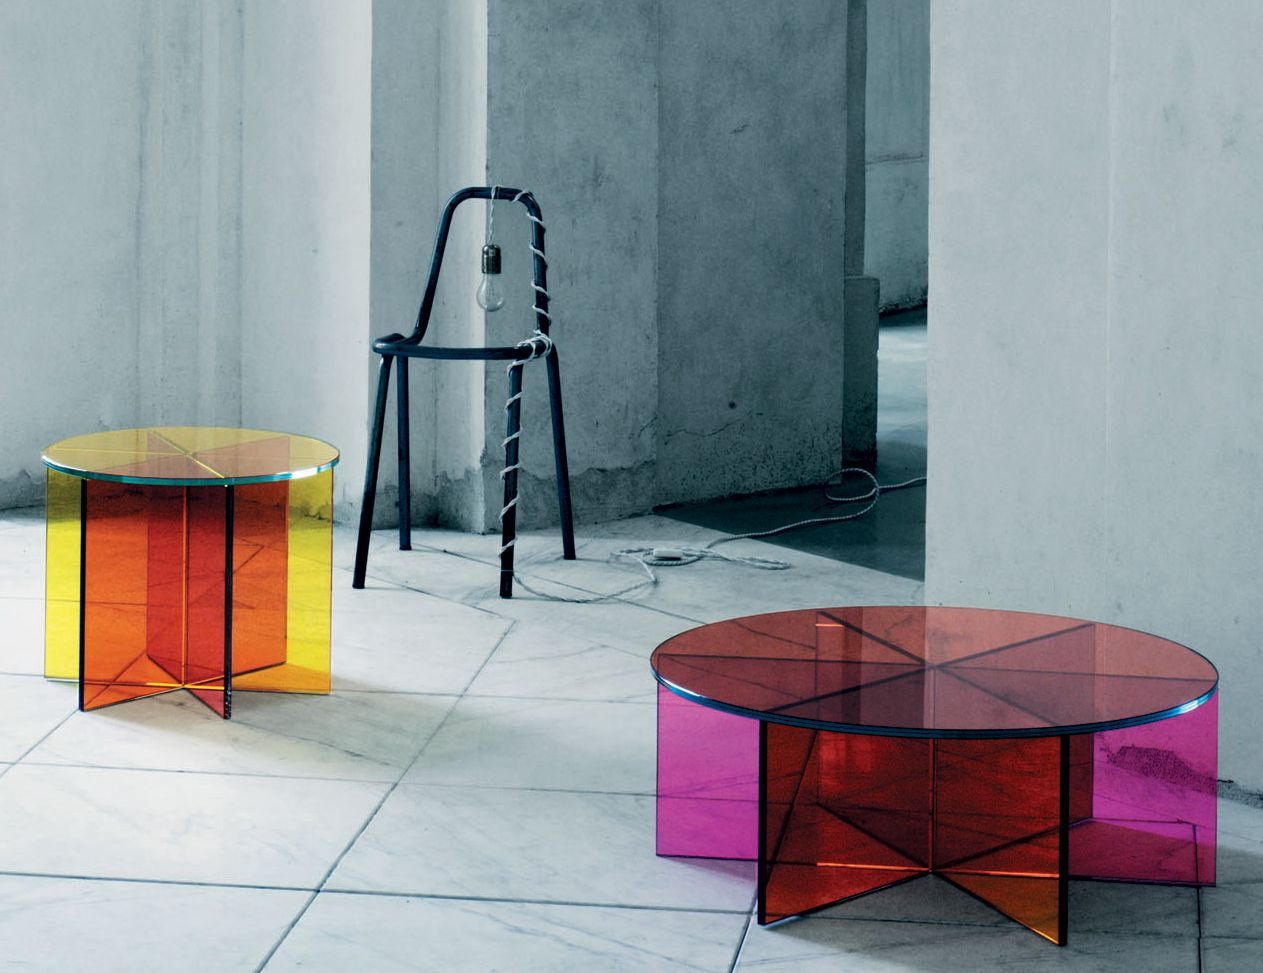 XXX Luxury Italian Coffee Table Shown In Transparent Colored Glass. This  Contemporary Glass Furniture Collection Features Thick Laminated Pink,  Yellow, ...